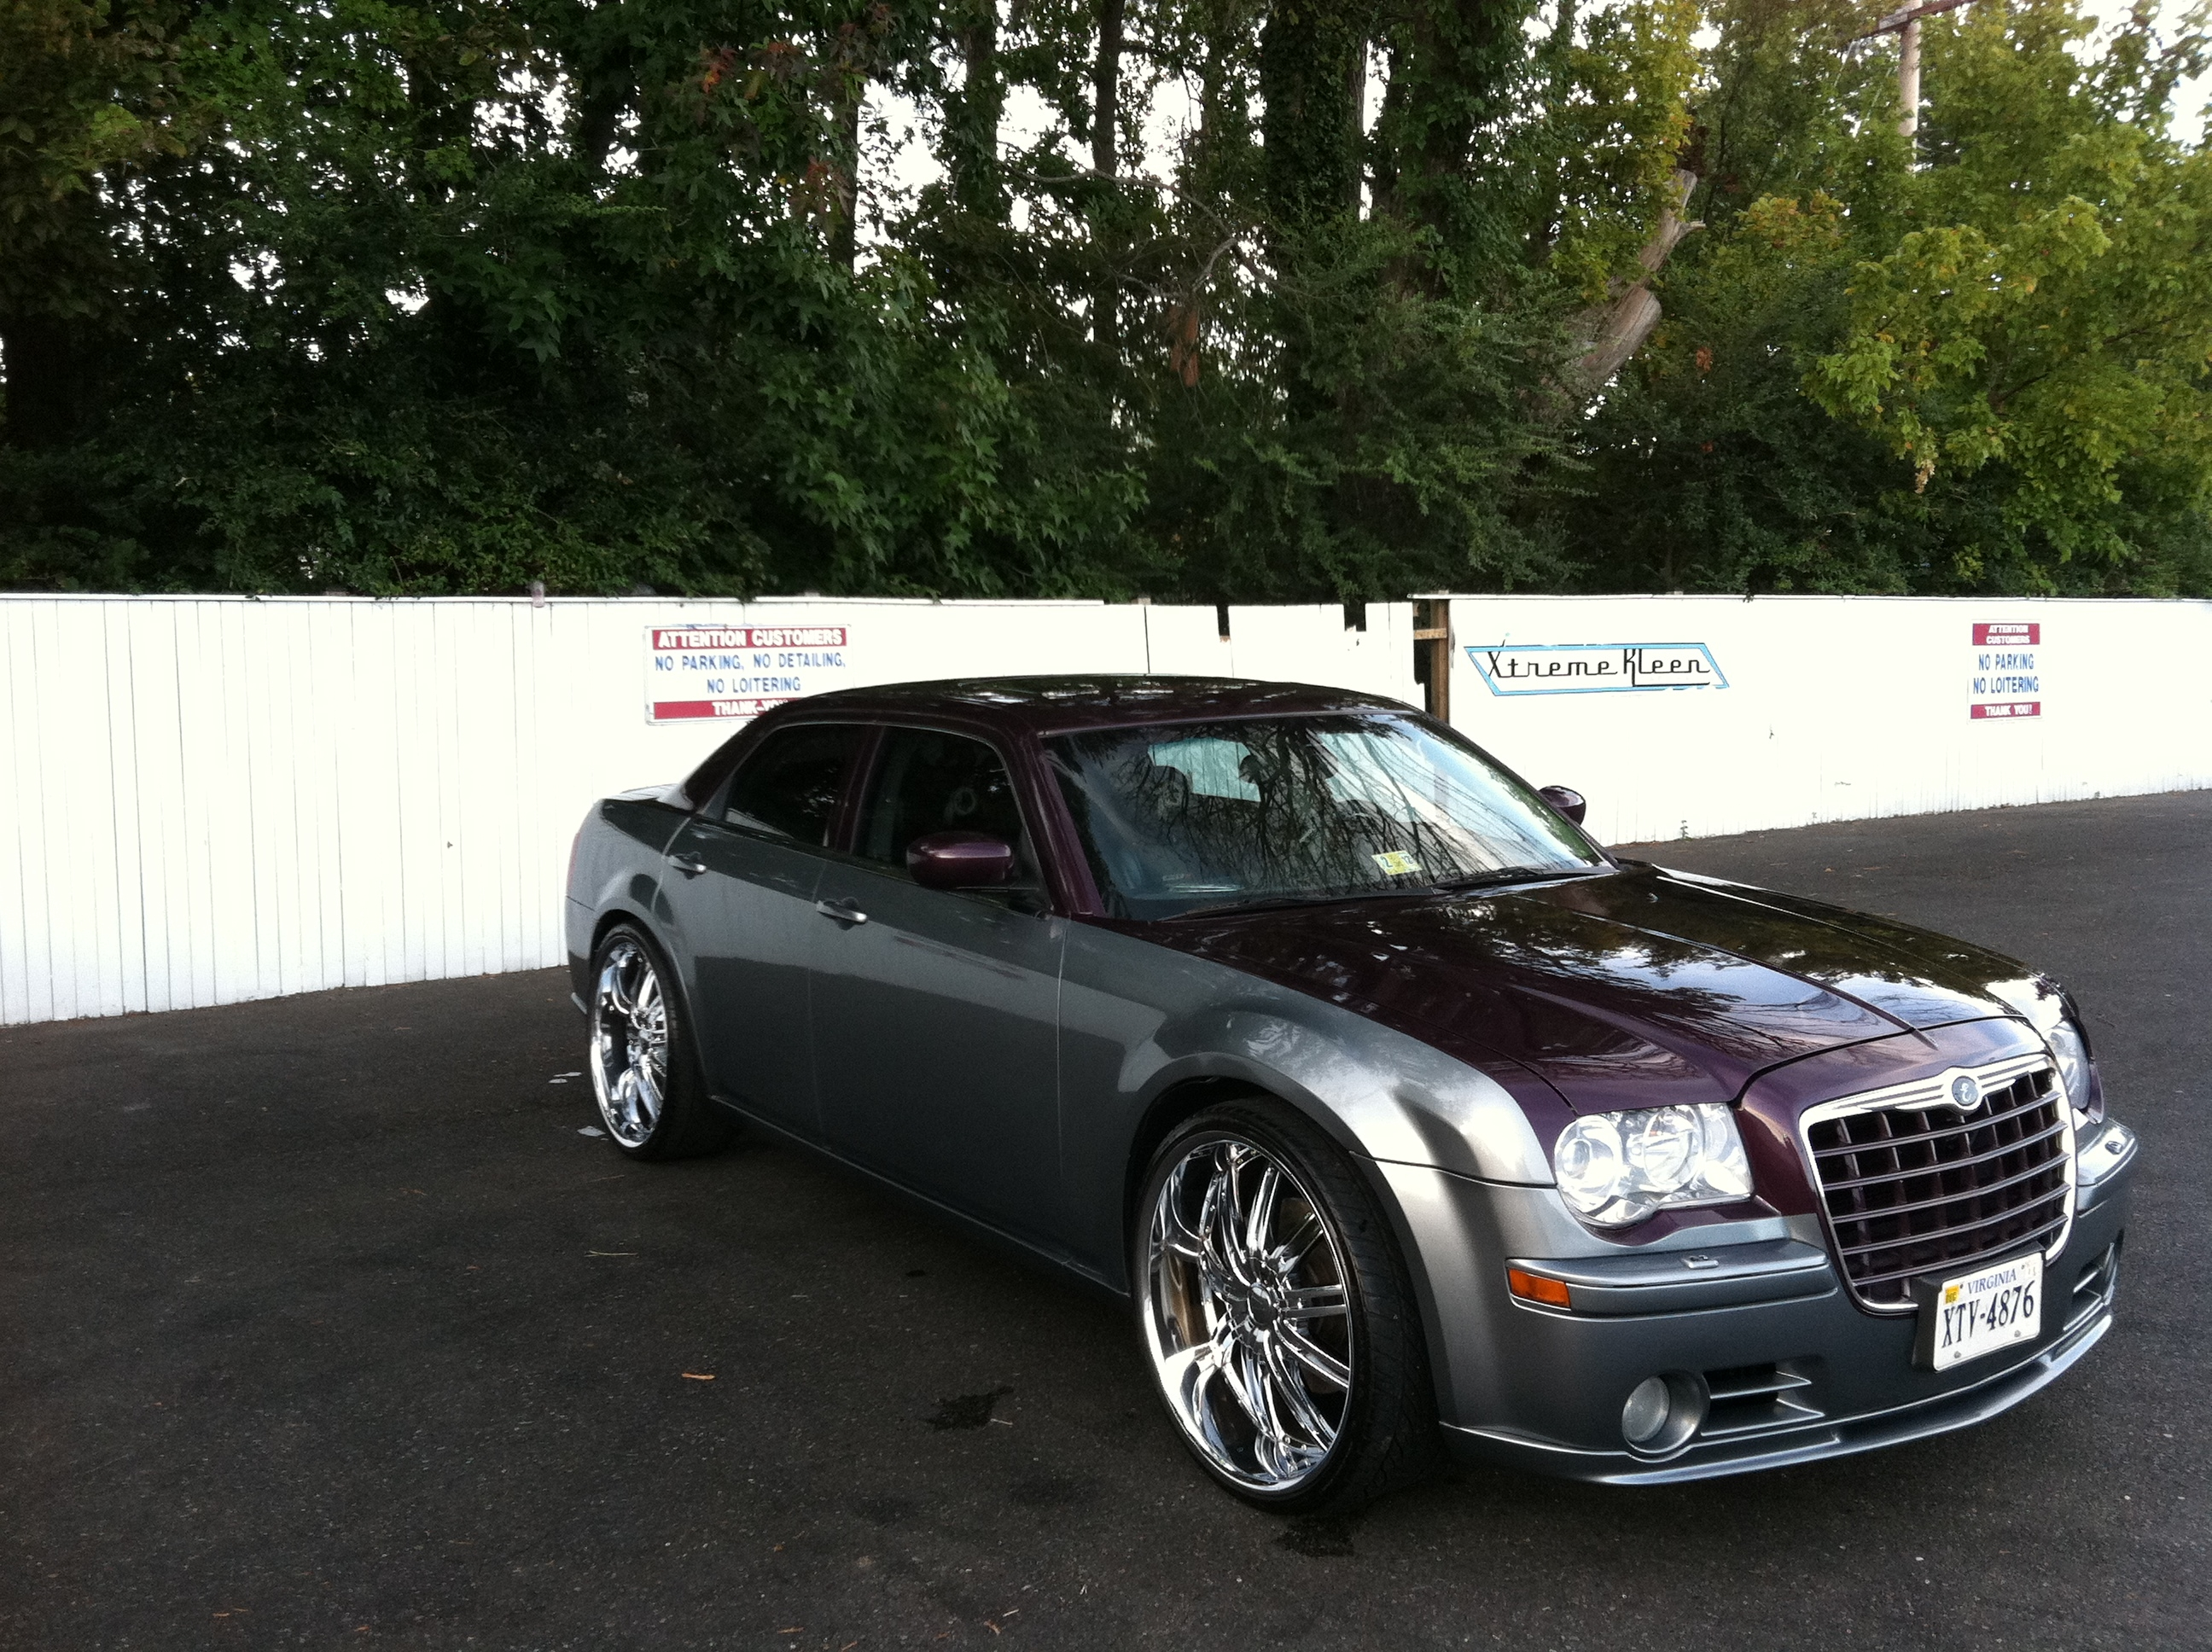 weeksew 2006 Chrysler 300 Specs, Photos, Modification Info at CarDomain